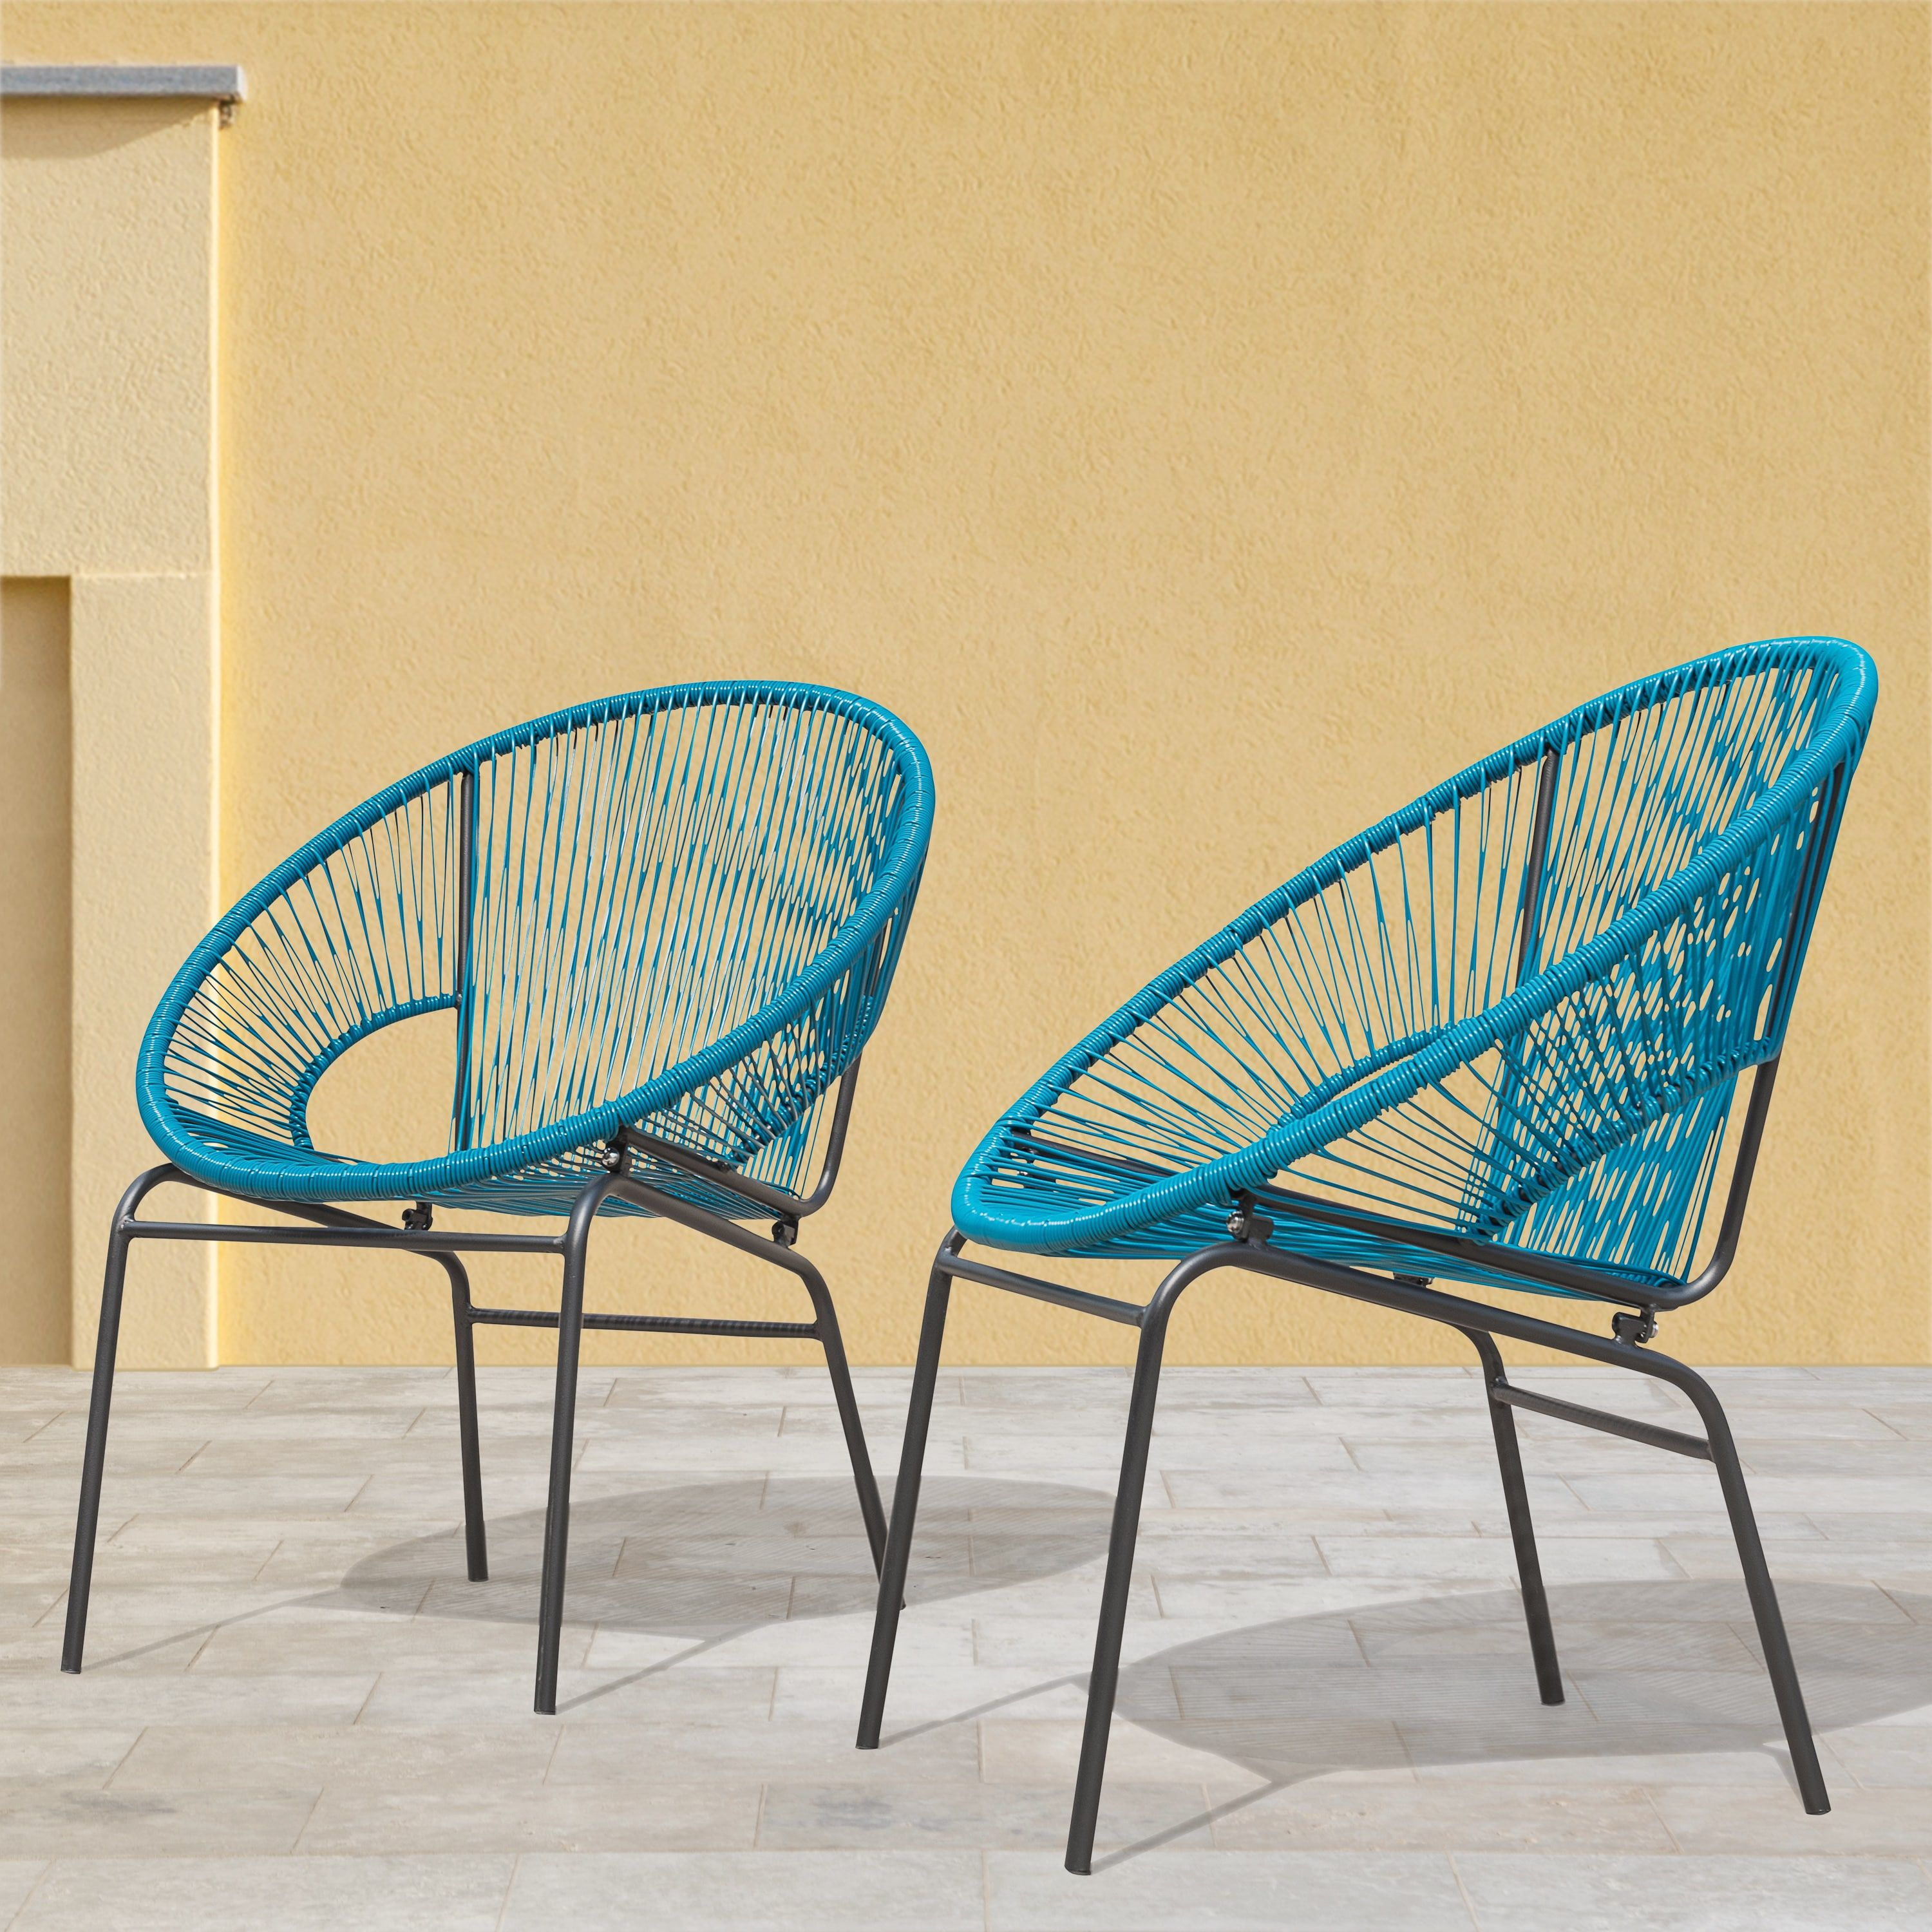 Sarcelles Woven Wicker Patio Chairs By Corvus Set Of 2 Free Shipping Today 23999647